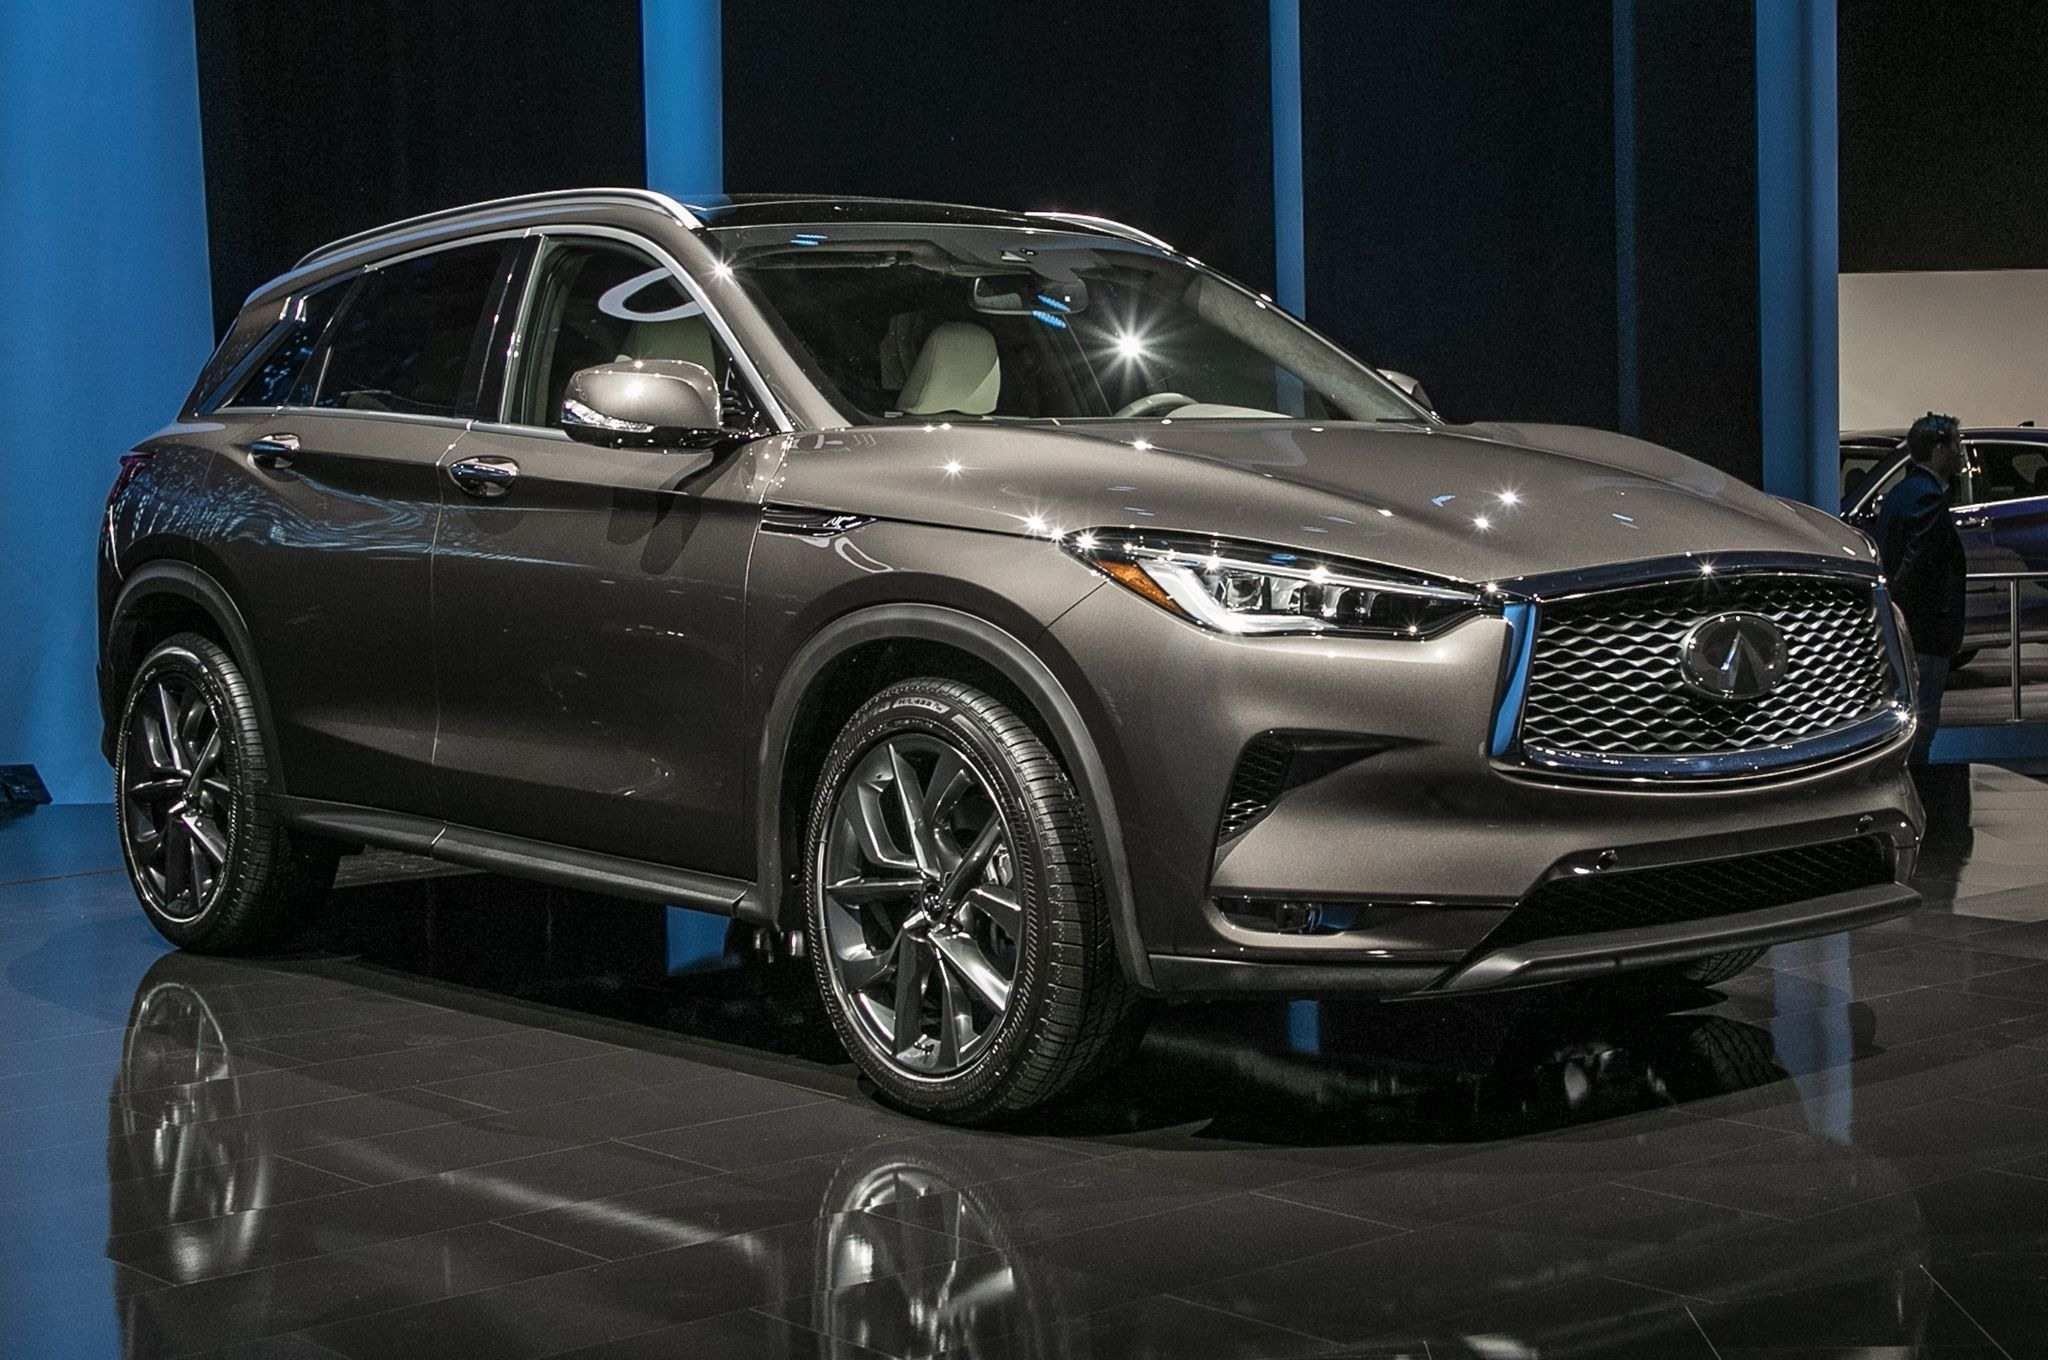 57 Best Review 2019 Infiniti Fx50 Price by 2019 Infiniti Fx50